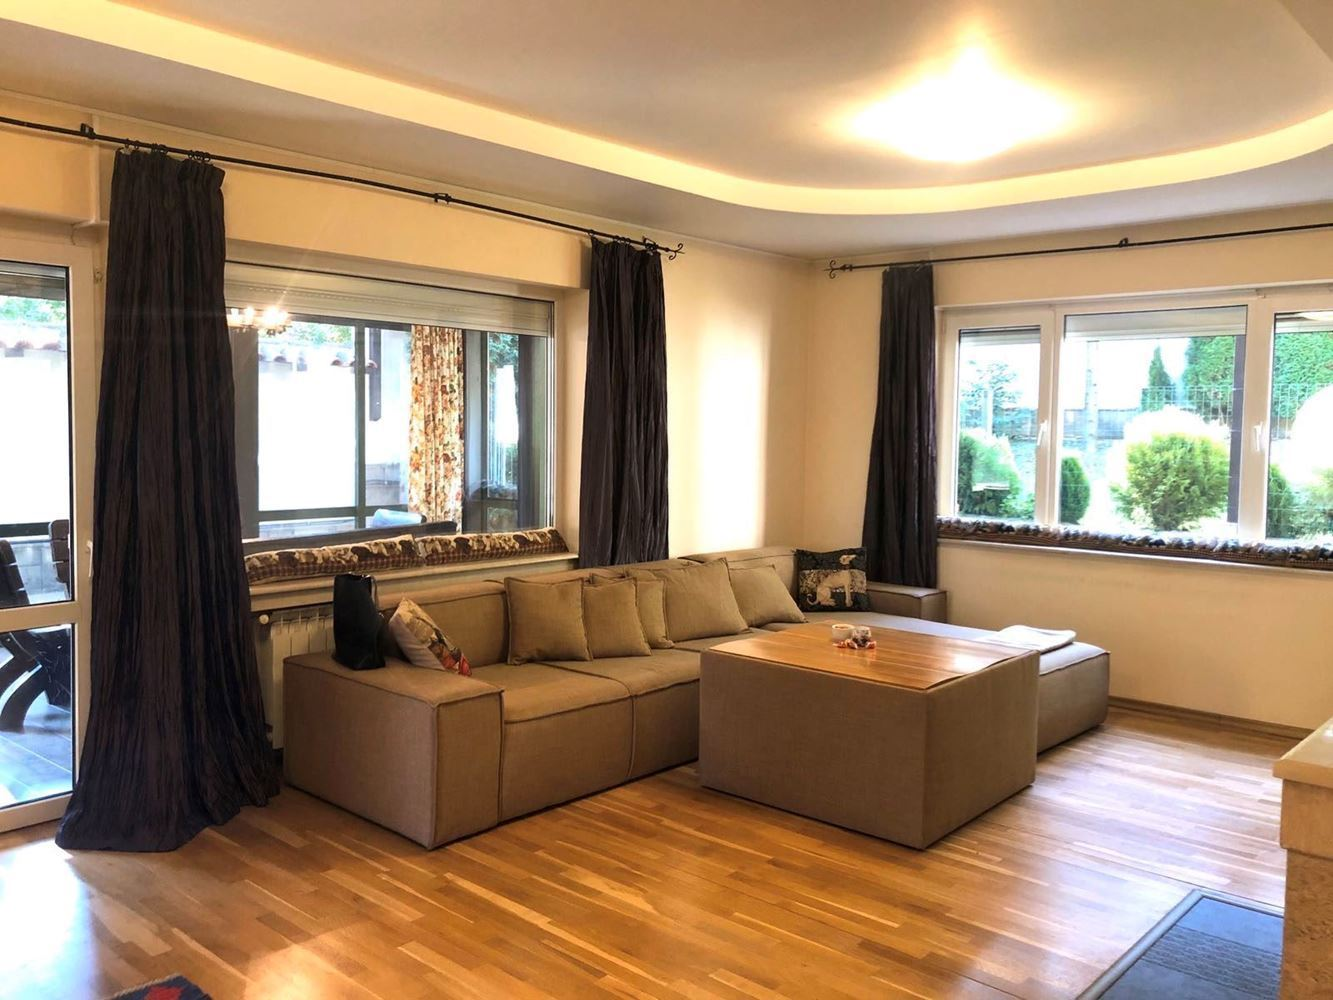 House for Rent, Boyana